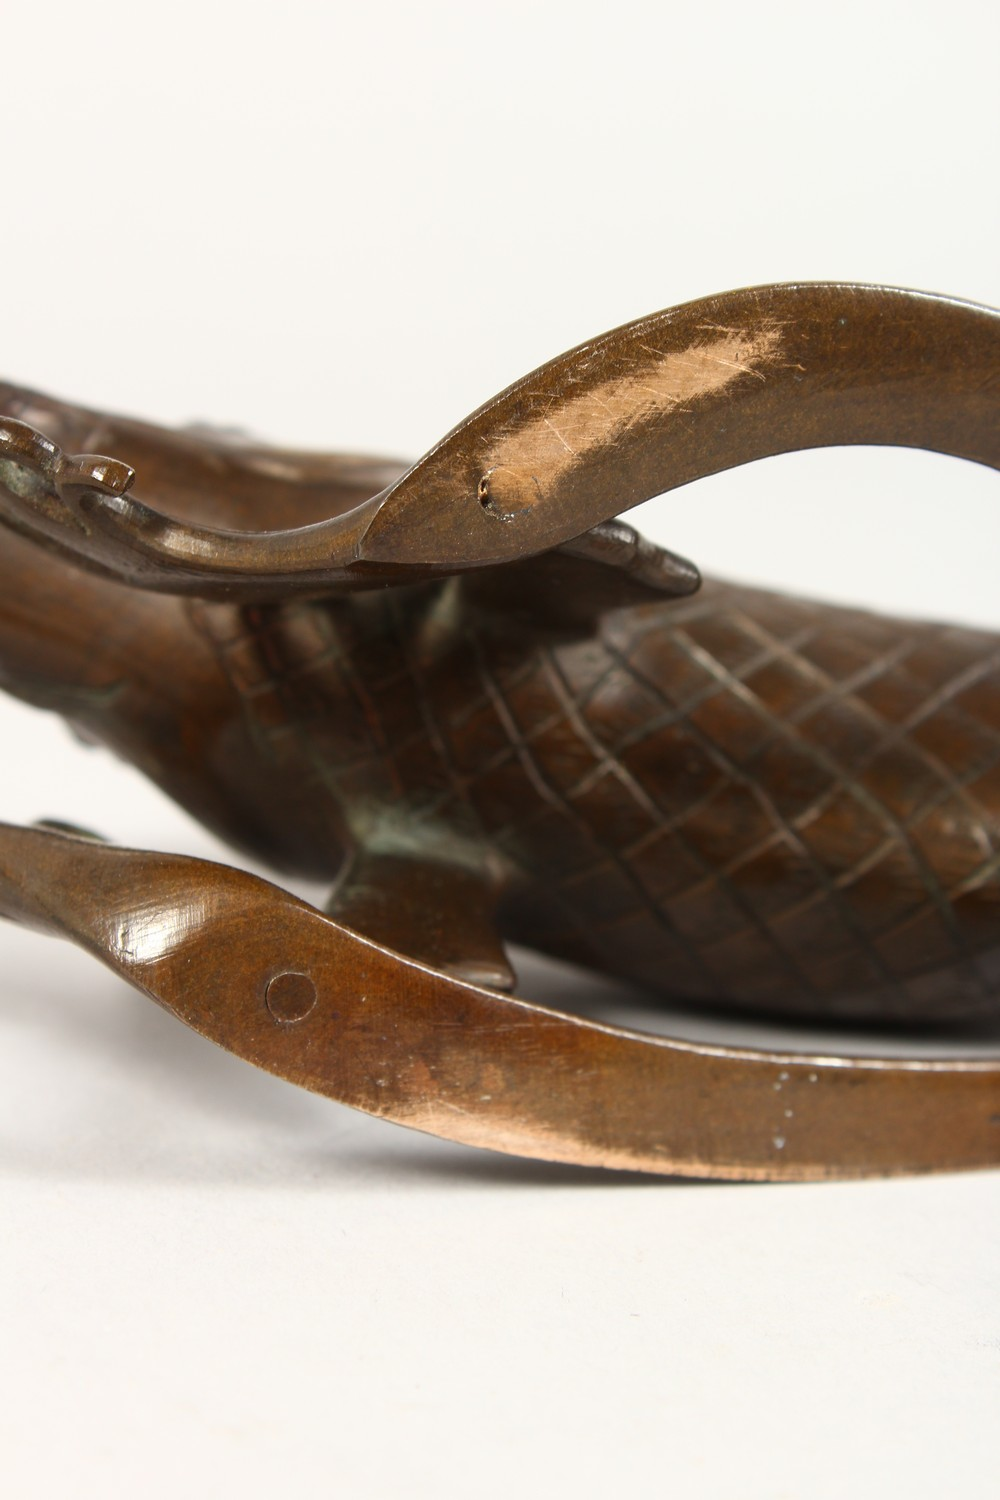 A GOOD JAPANESE MEIJI PERIOD BRONZE KORO OF EBISU - LUCKY GOD & FISH, the censer formed from the - Image 10 of 10